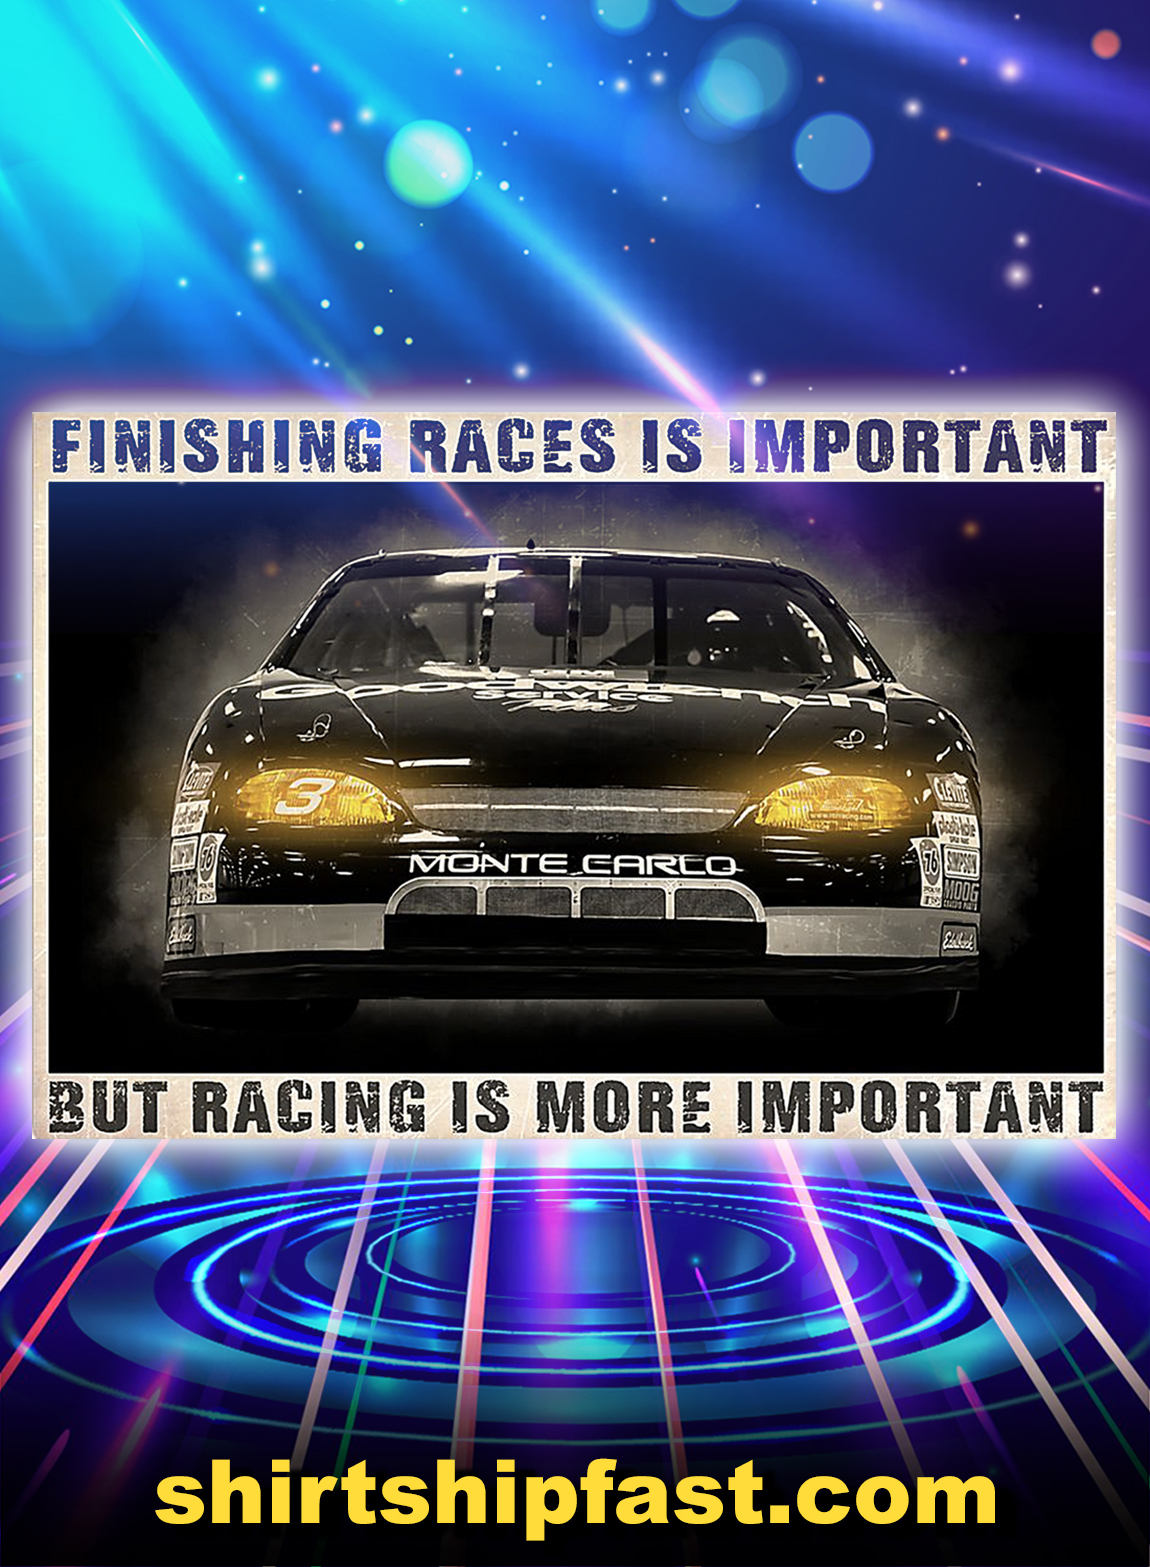 Car finishing races is important but racing is more important poster - A2